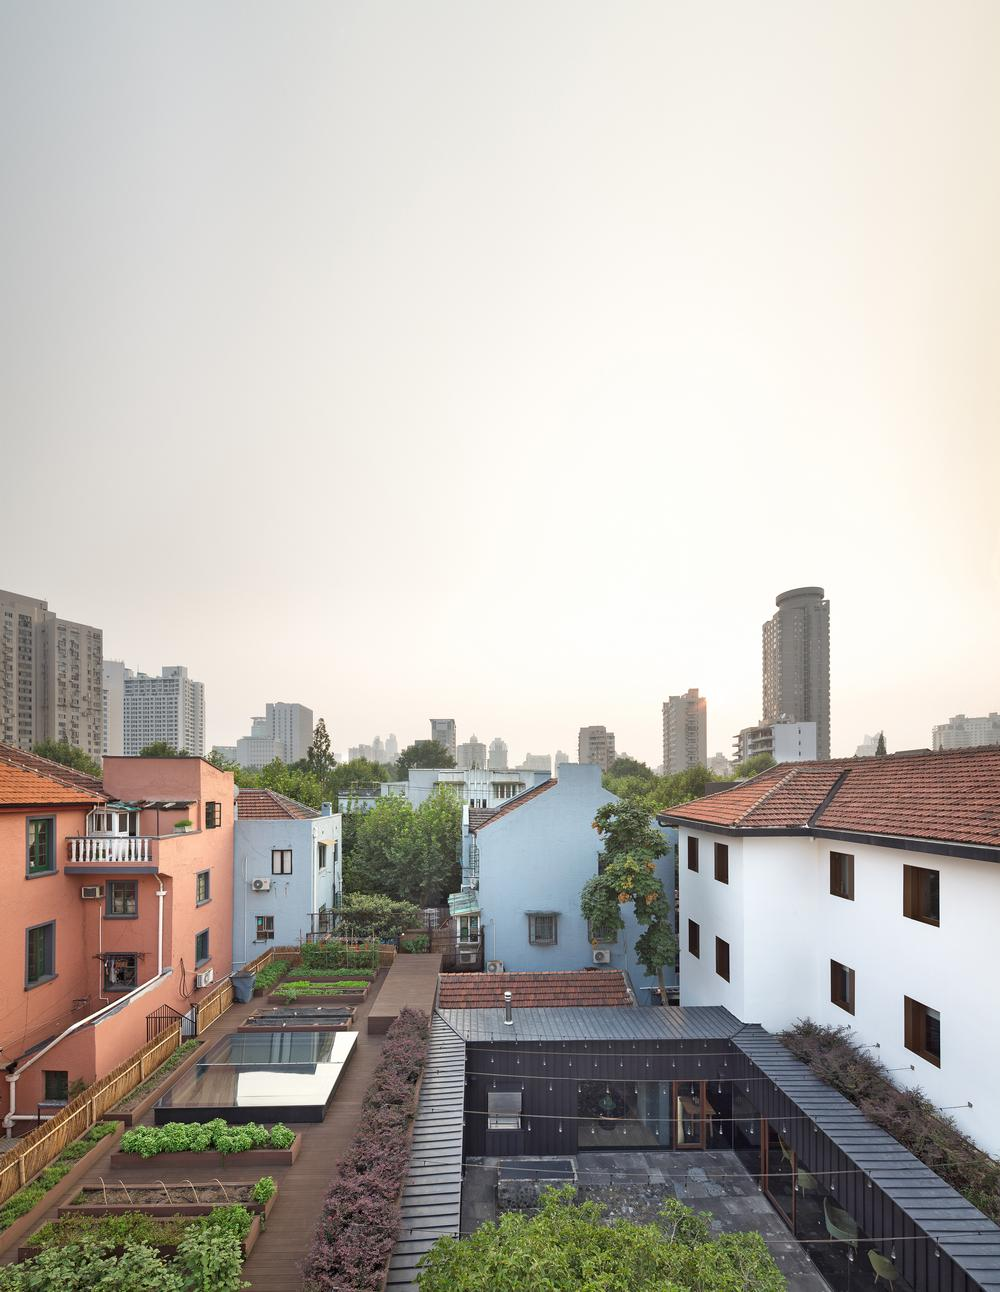 The building, with its urban farm, is nestled into a popular residential area of Shanghai